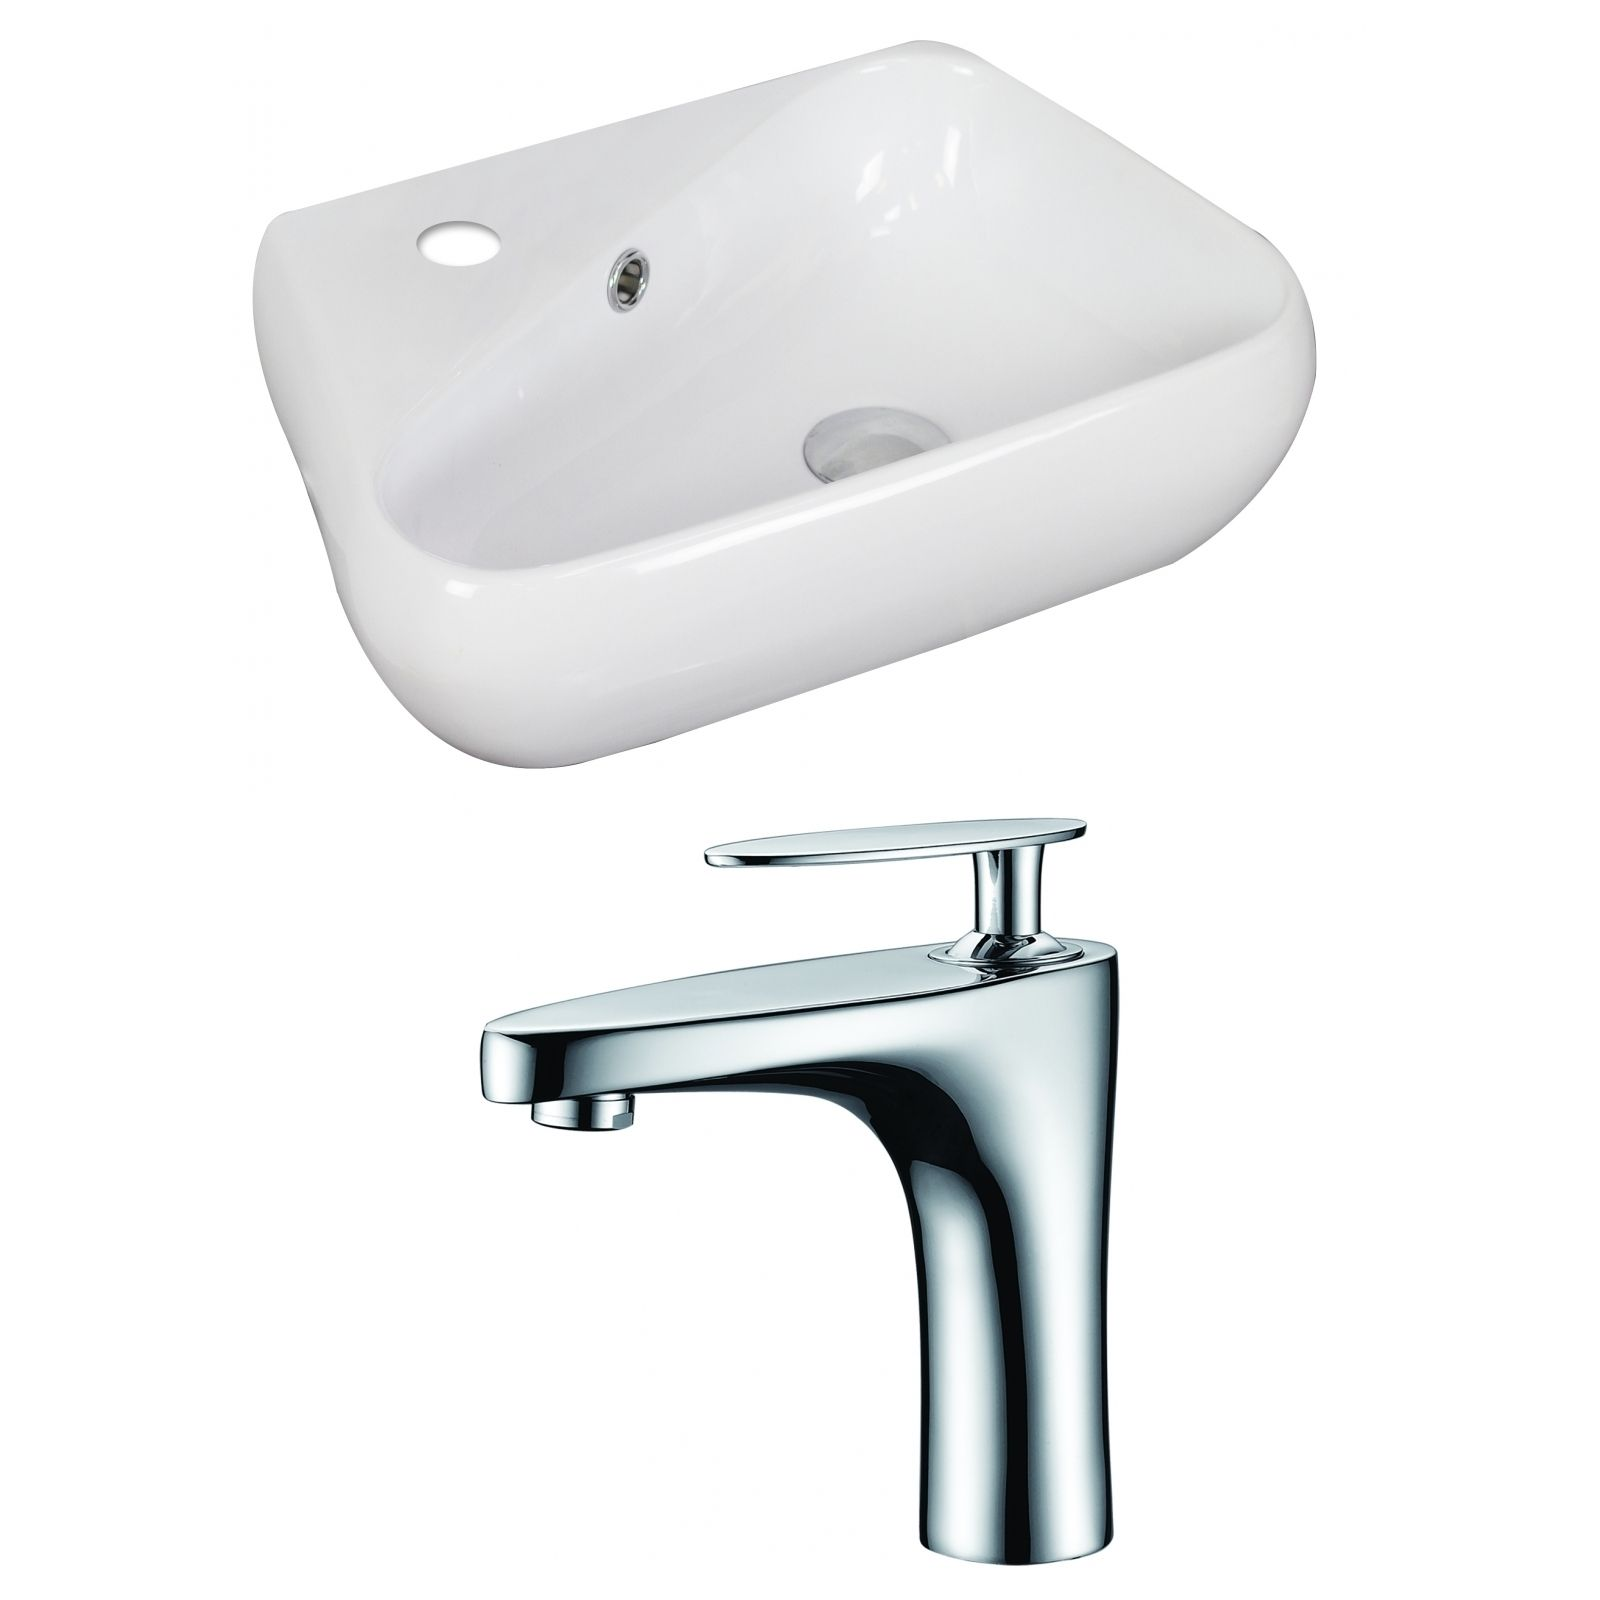 19 In W X 11 In D Unique Vessel Set In White Color With Single Hole Cupc Faucet Wall Mounted Bathroom Sinks Sink Faucet